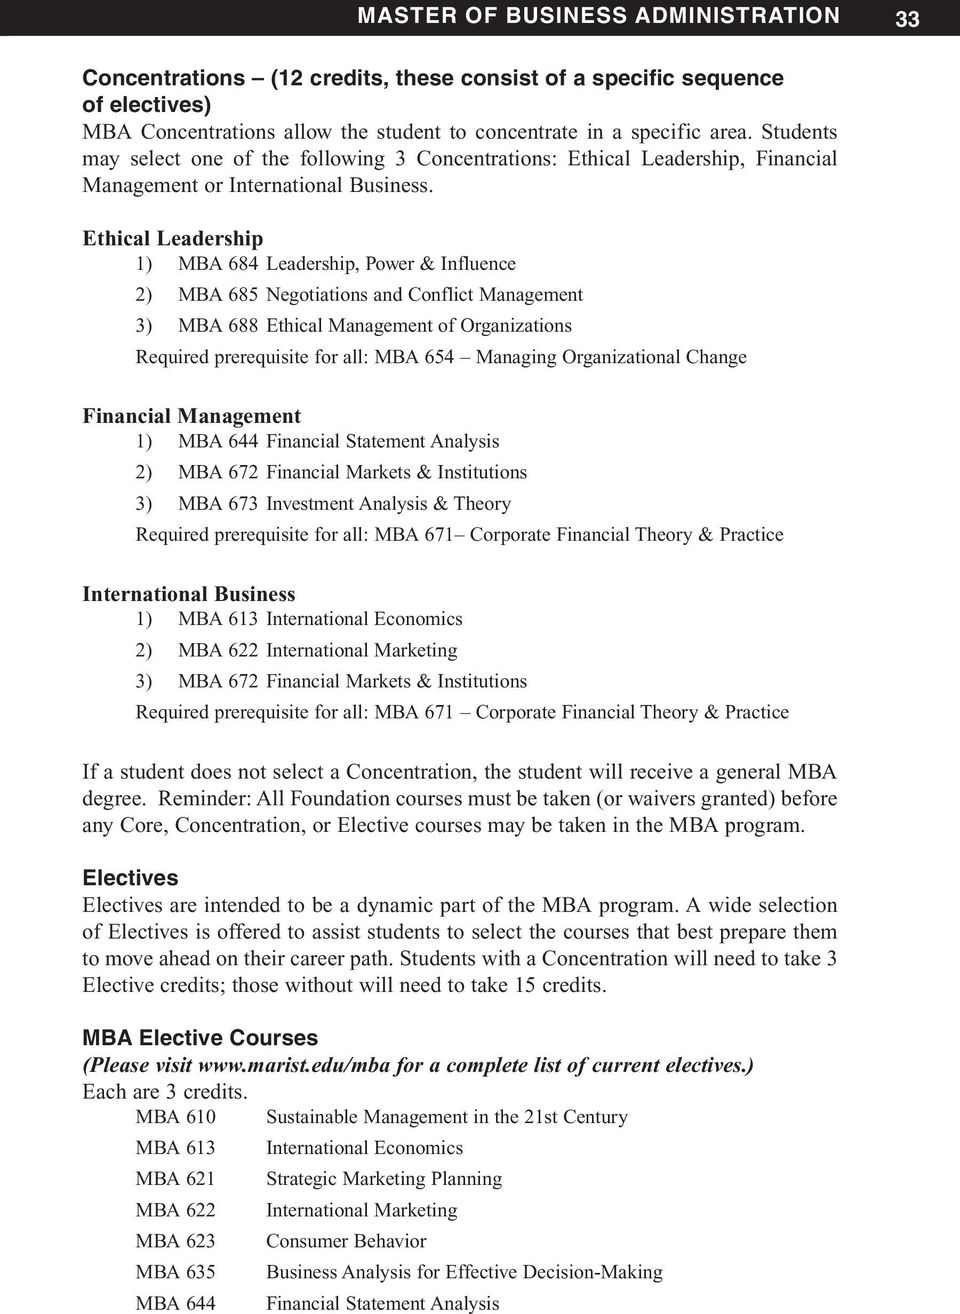 Ethical Leadership 1) MBA 684 Leadership, Power & Influence 2) MBA 685 Negotiations and Conflict Management 3) MBA 688 Ethical Management of Organizations Required prerequisite for all: MBA 654